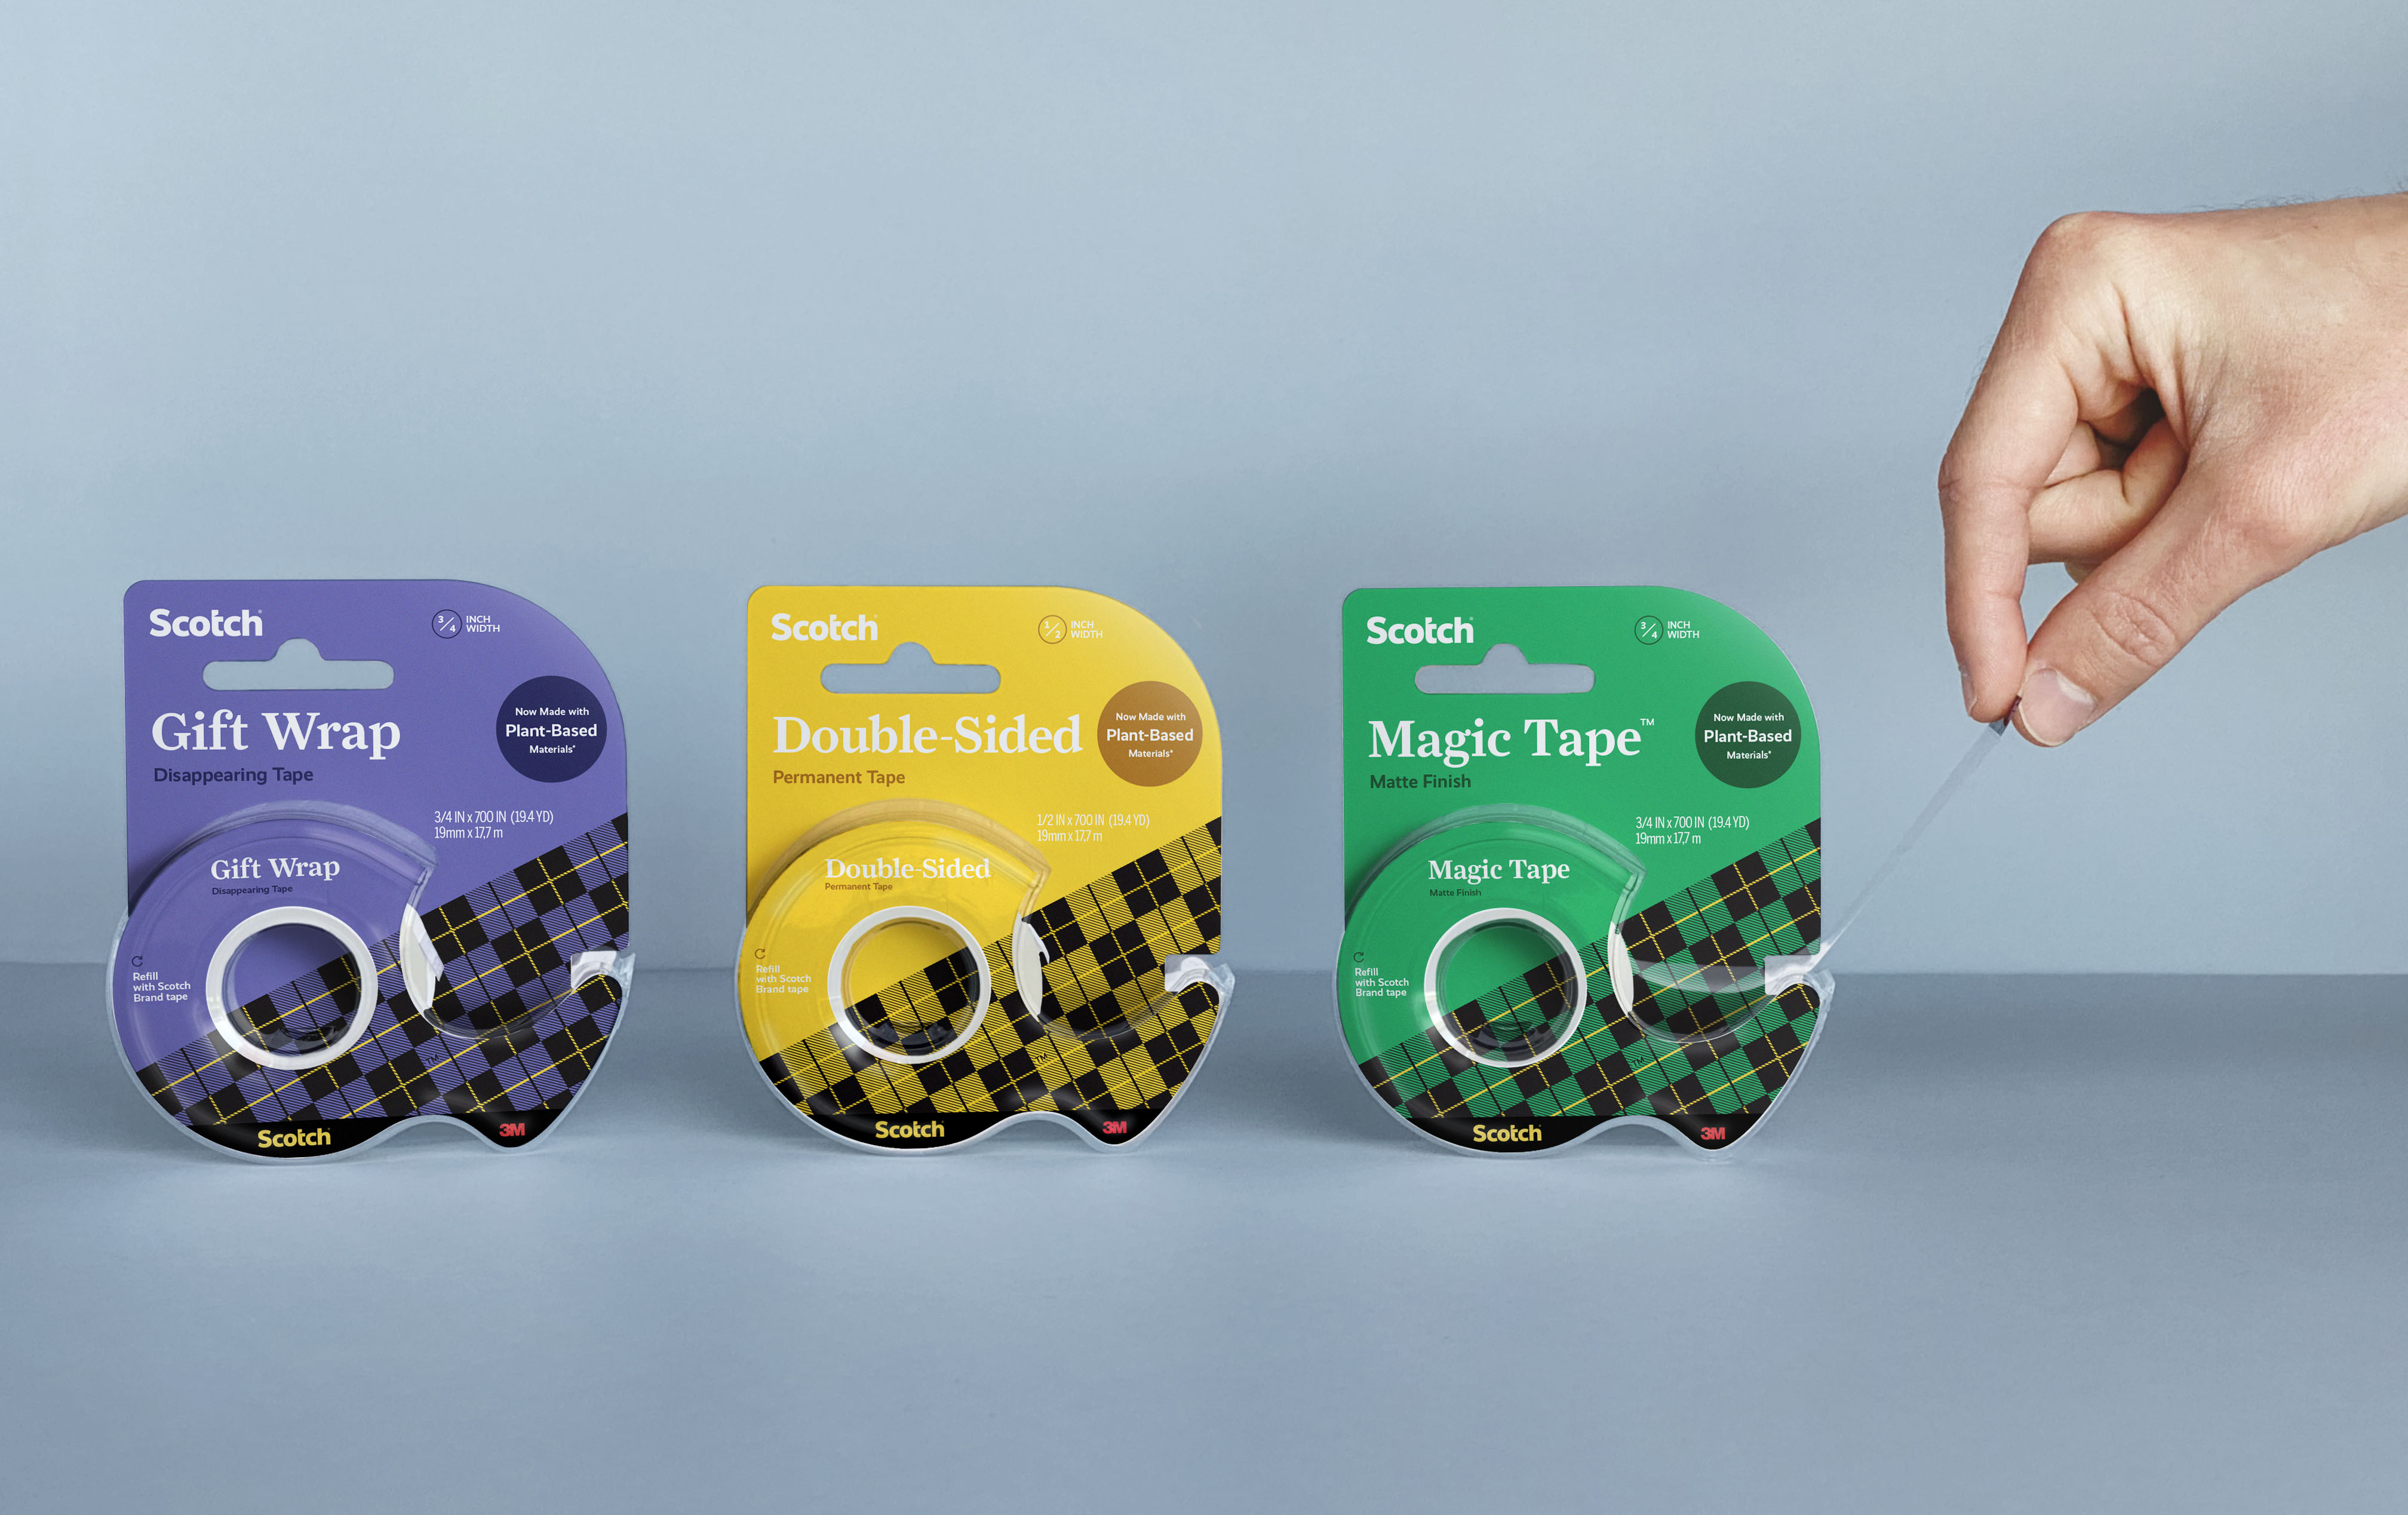 Redesigned tape packaging for a Scotch brand refresh